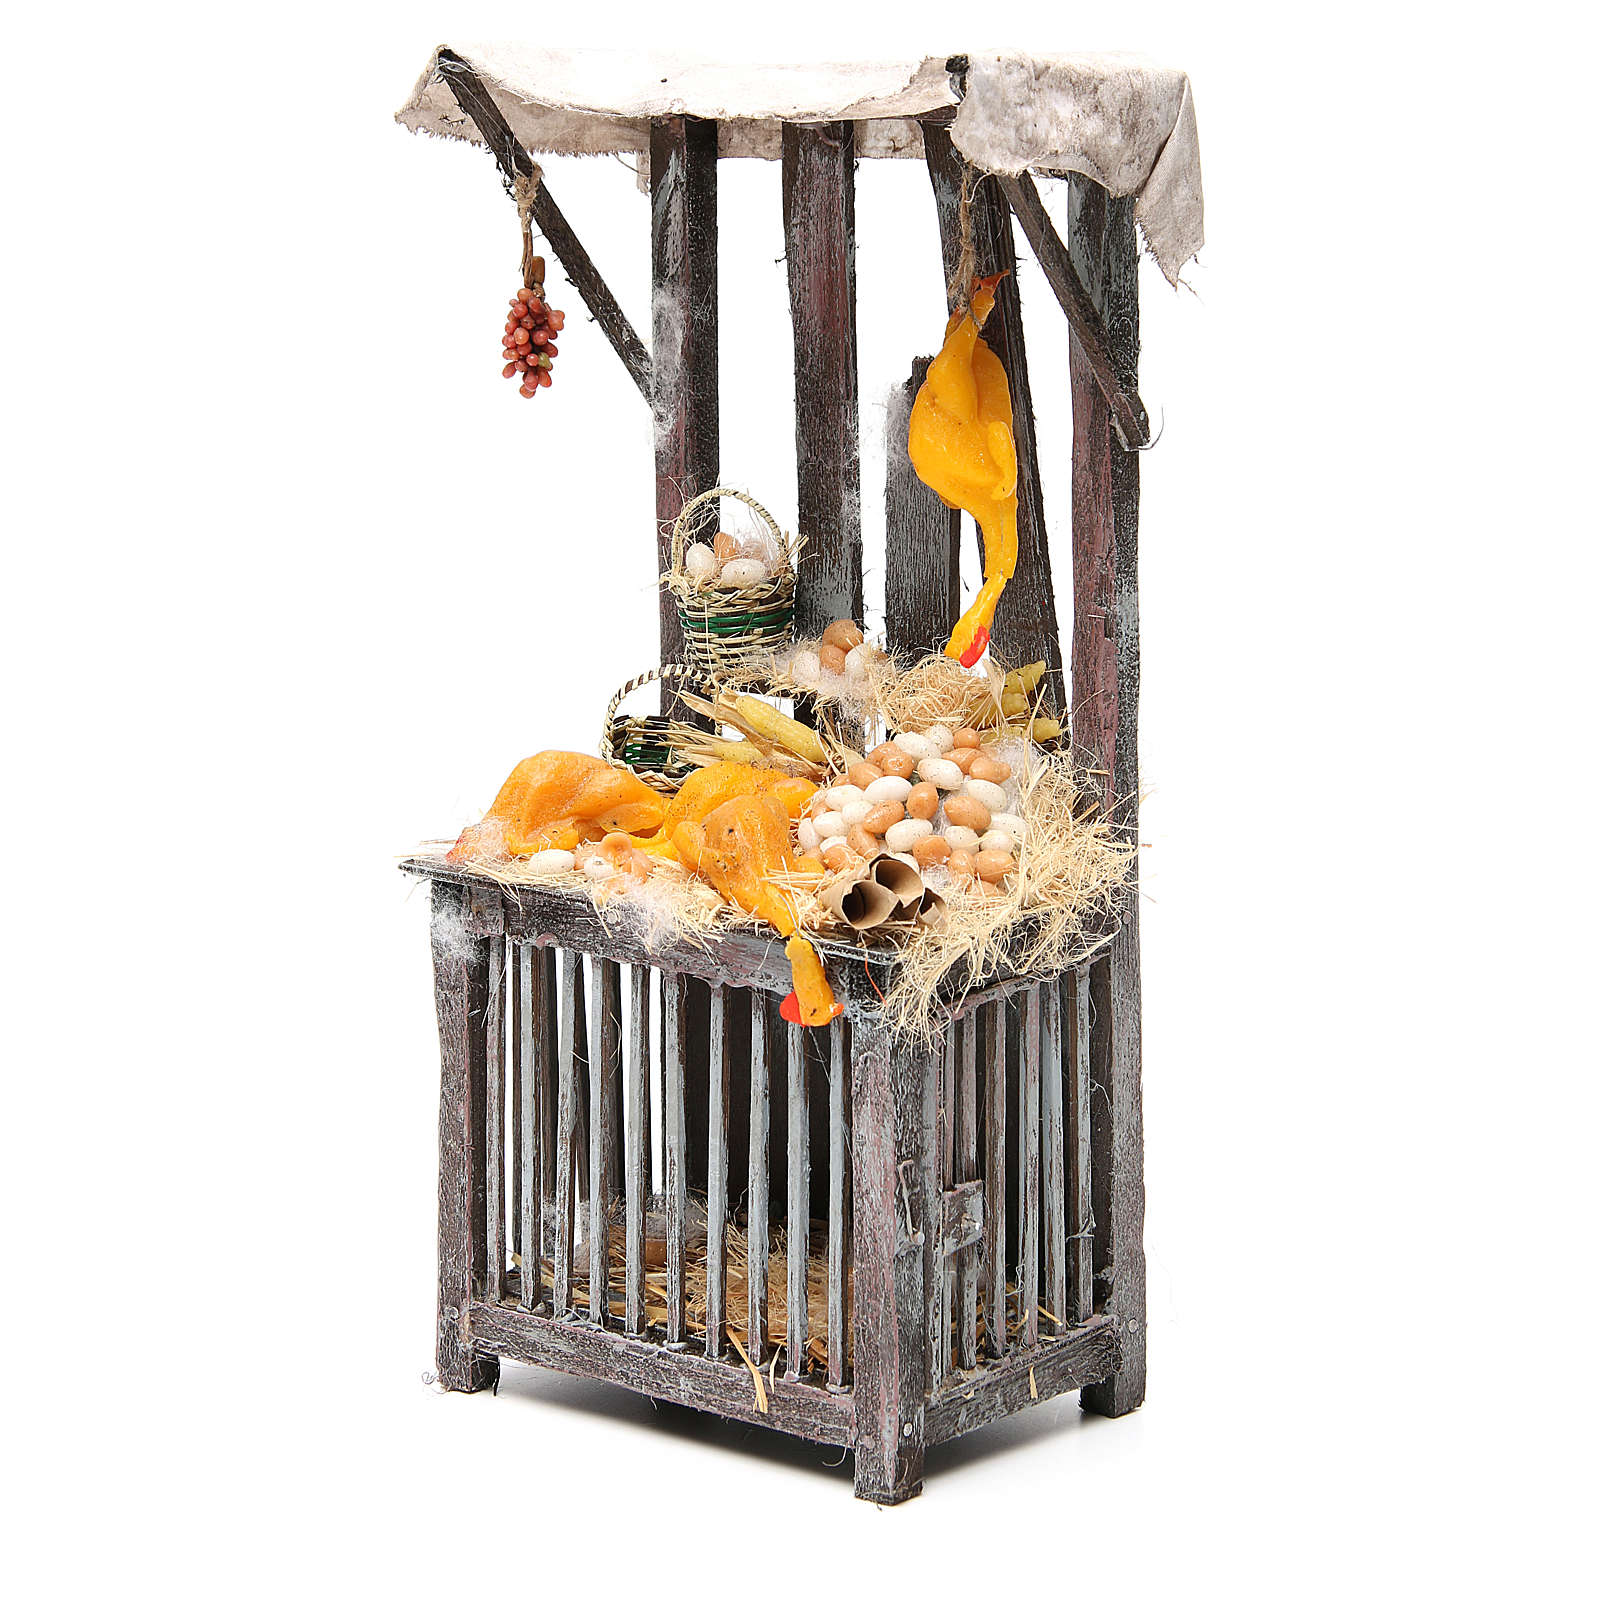 Nativity poultry seller stall in wax, 40x18x12cm 4